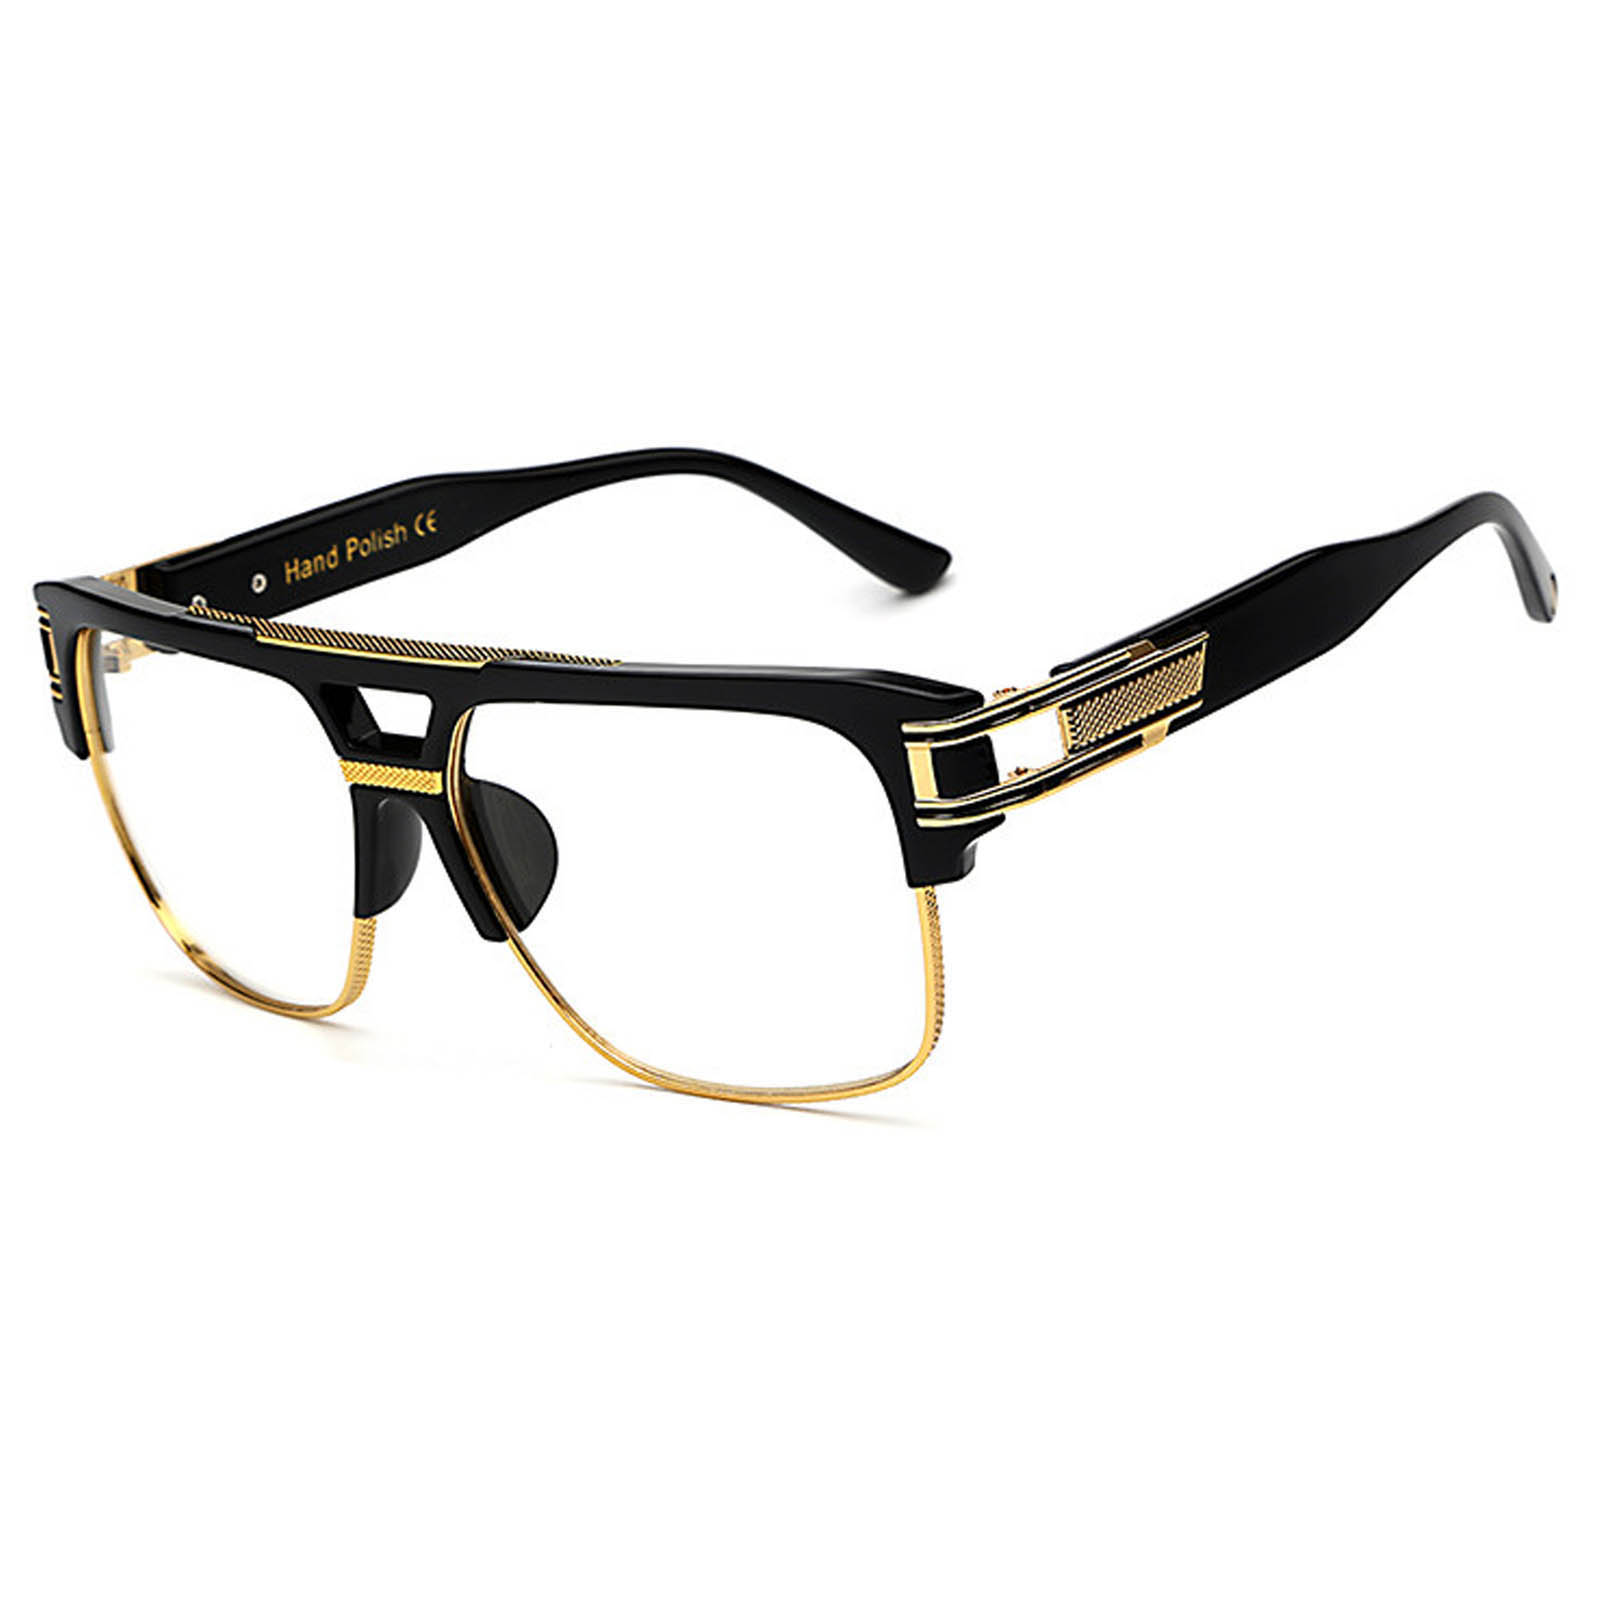 020 C3 Rectangle Sunglasses Men\'s Gold Black Frame Clear Lens One ...